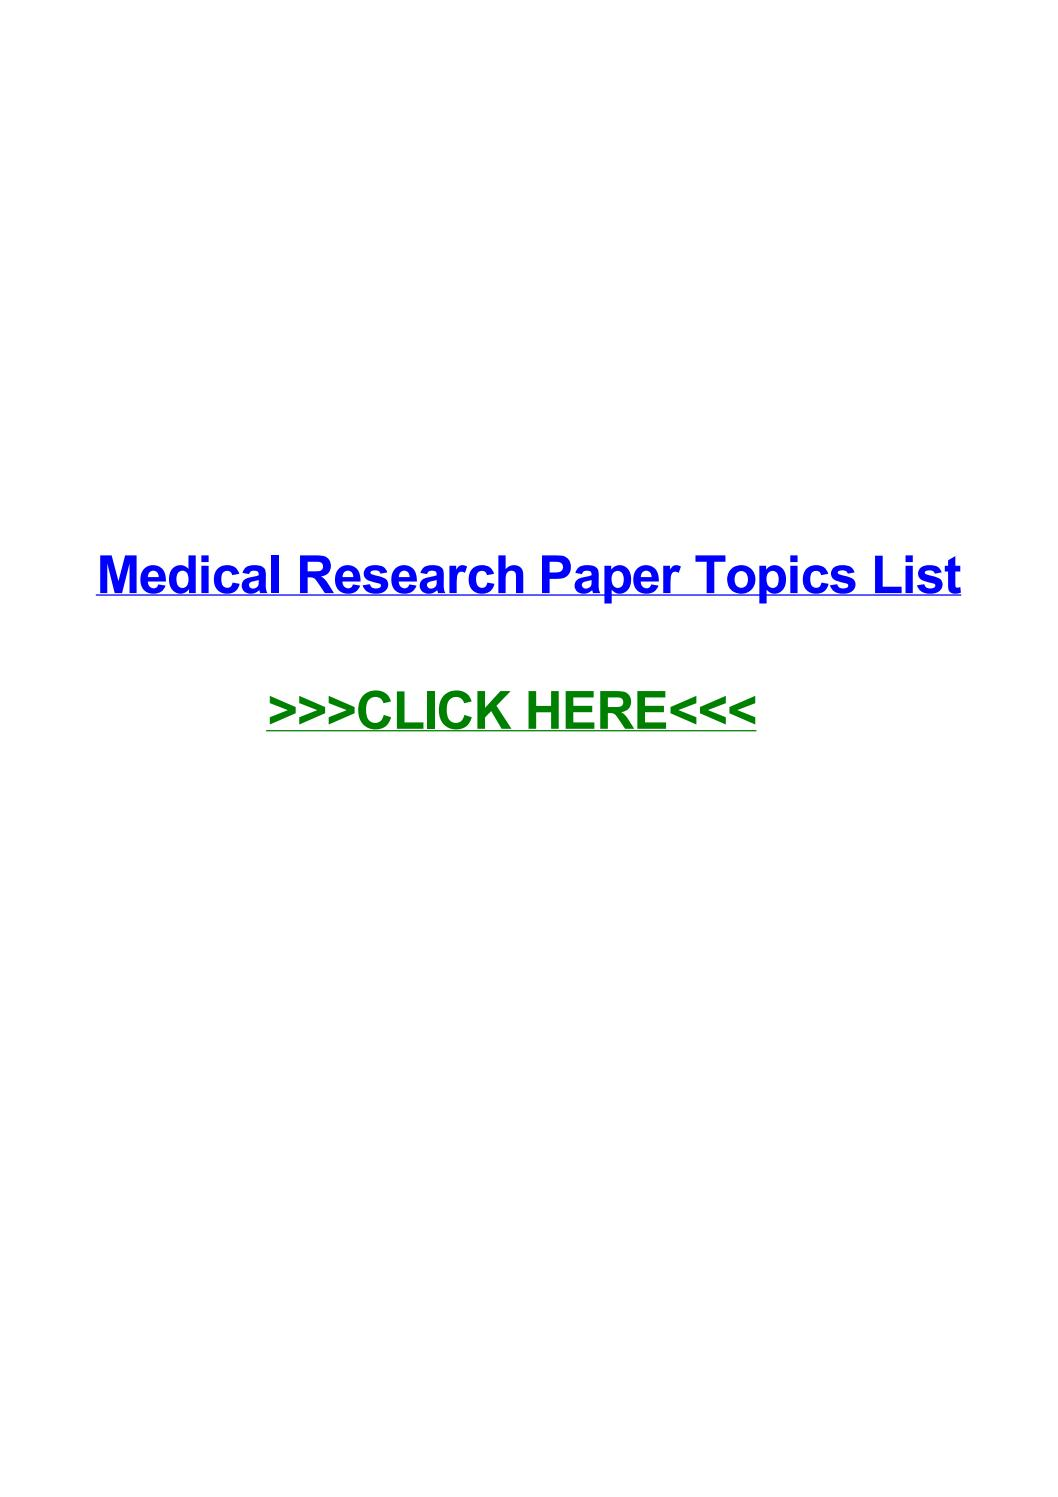 009 Medical Topics For Research Paper Page 1 Imposing Argumentative Interesting Full